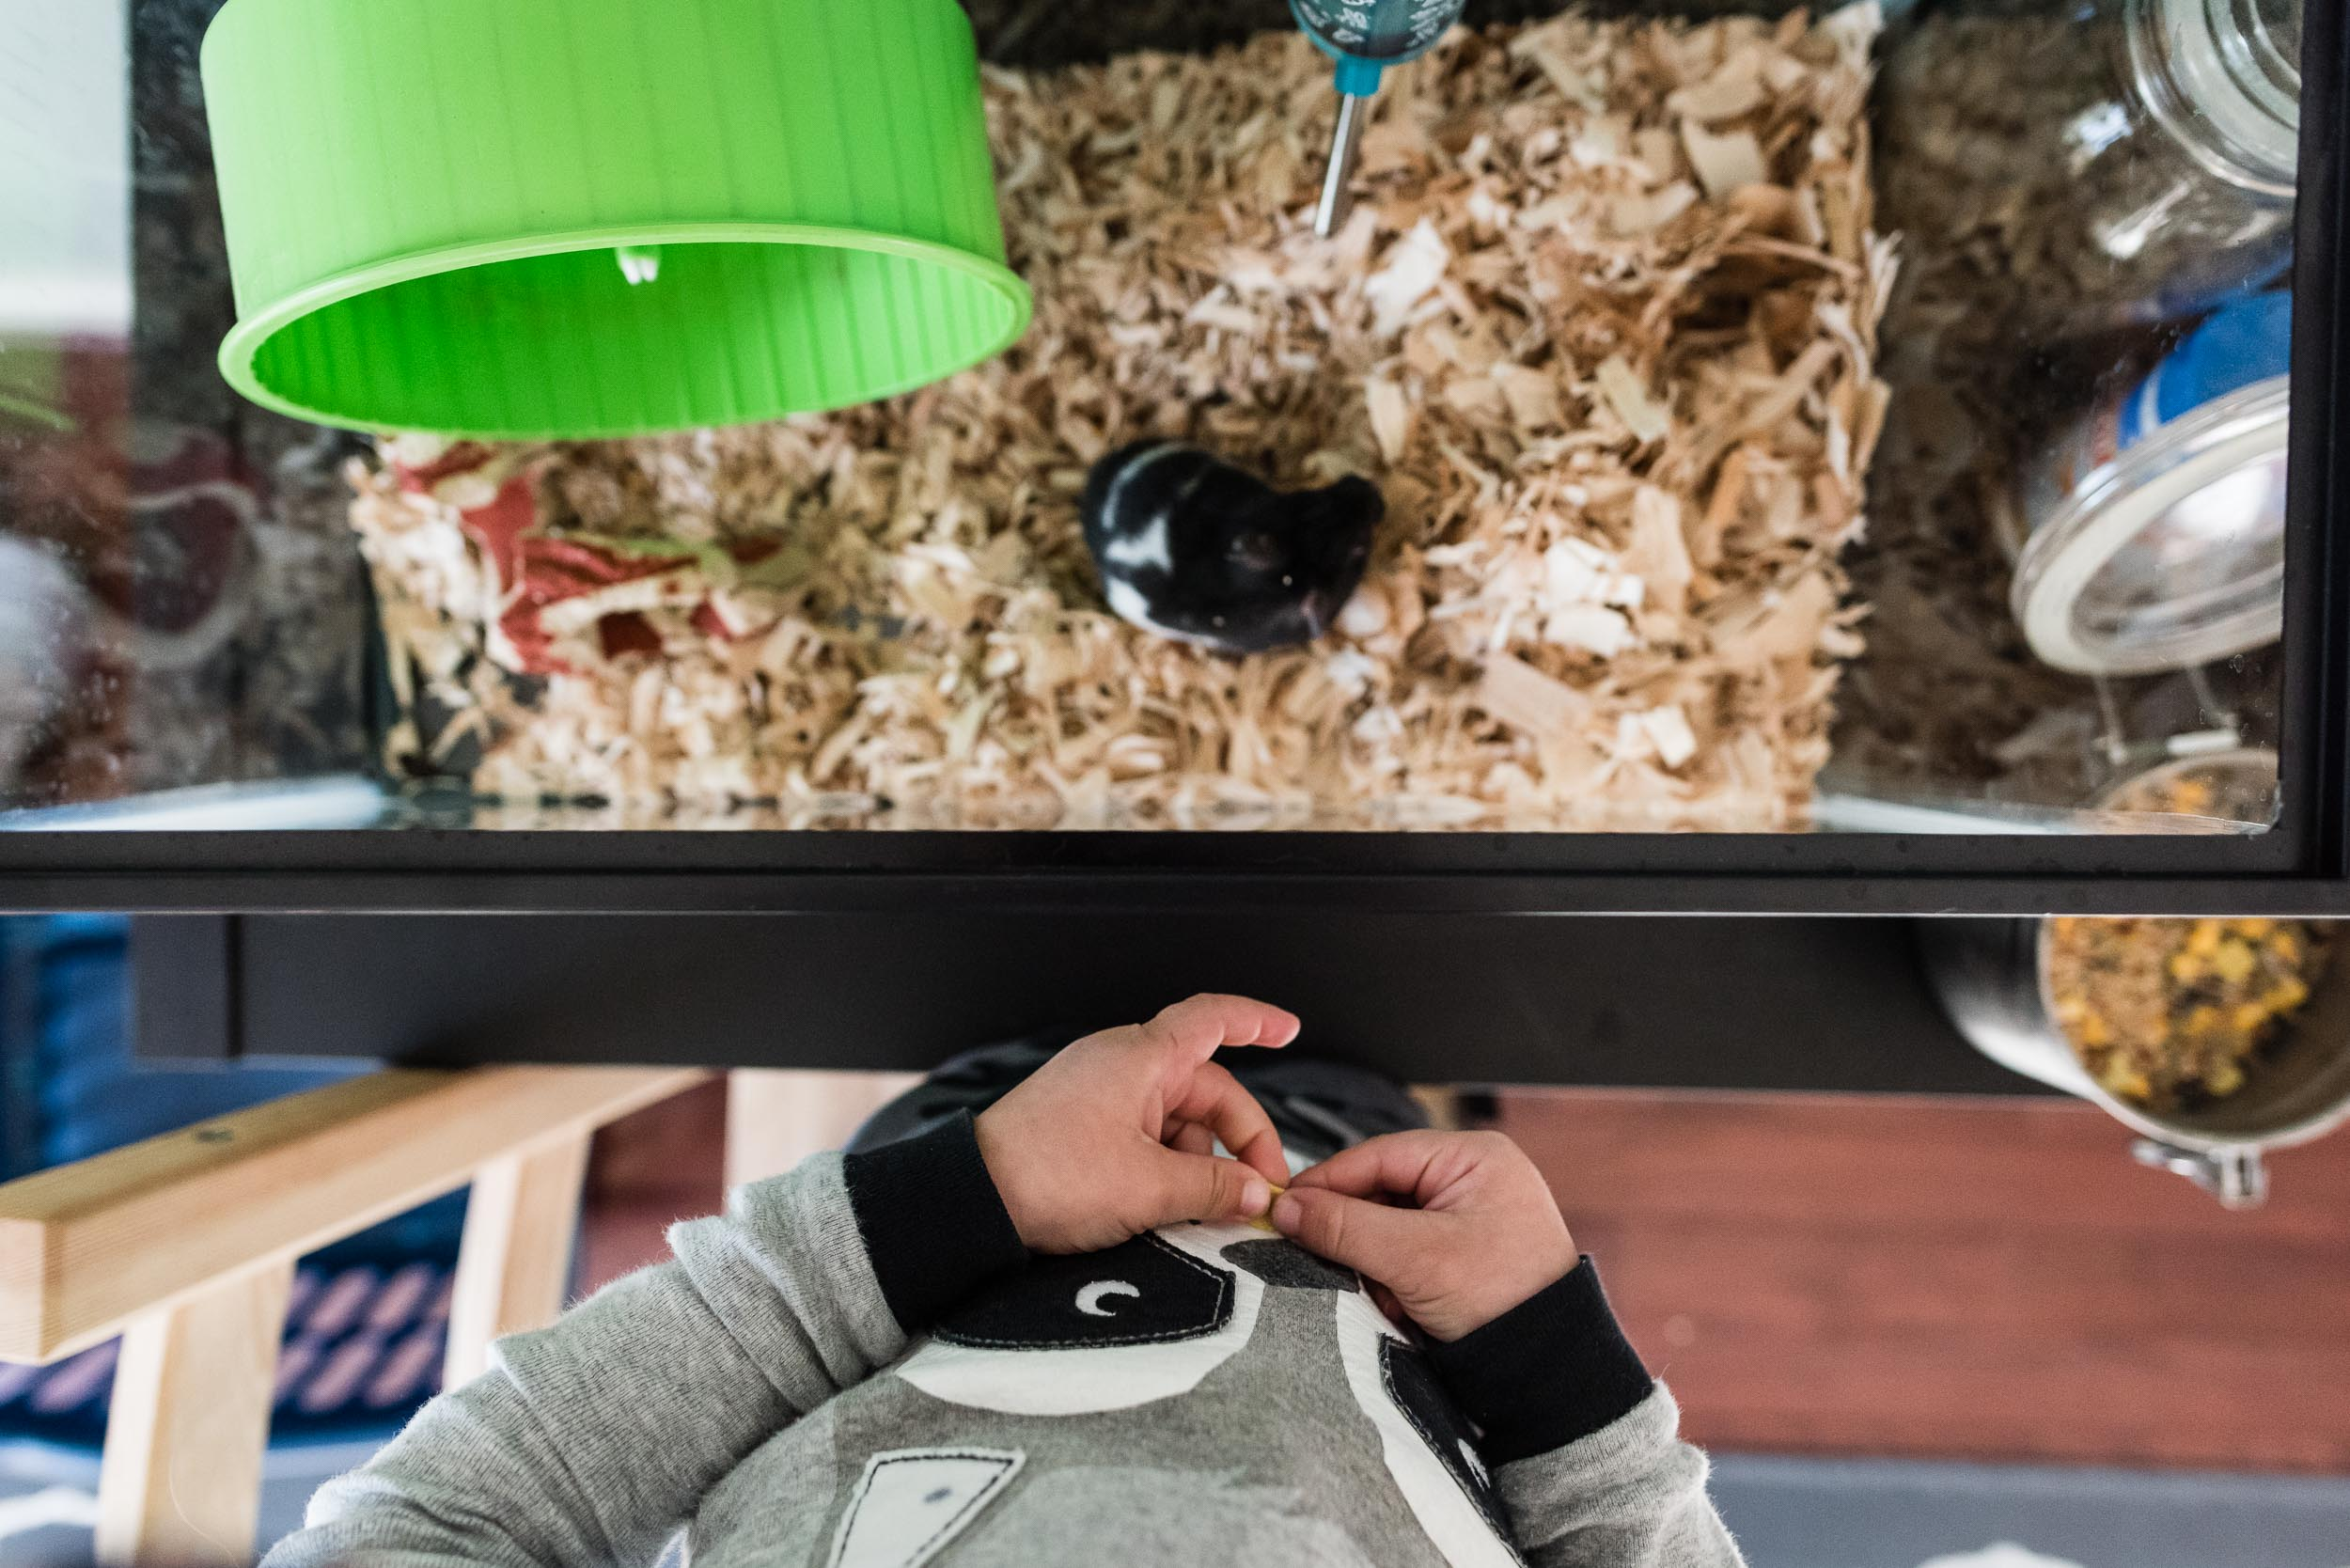 Boy waiting to feed pet hamster by Northern Virginia Family Photographer Nicole Sanchez